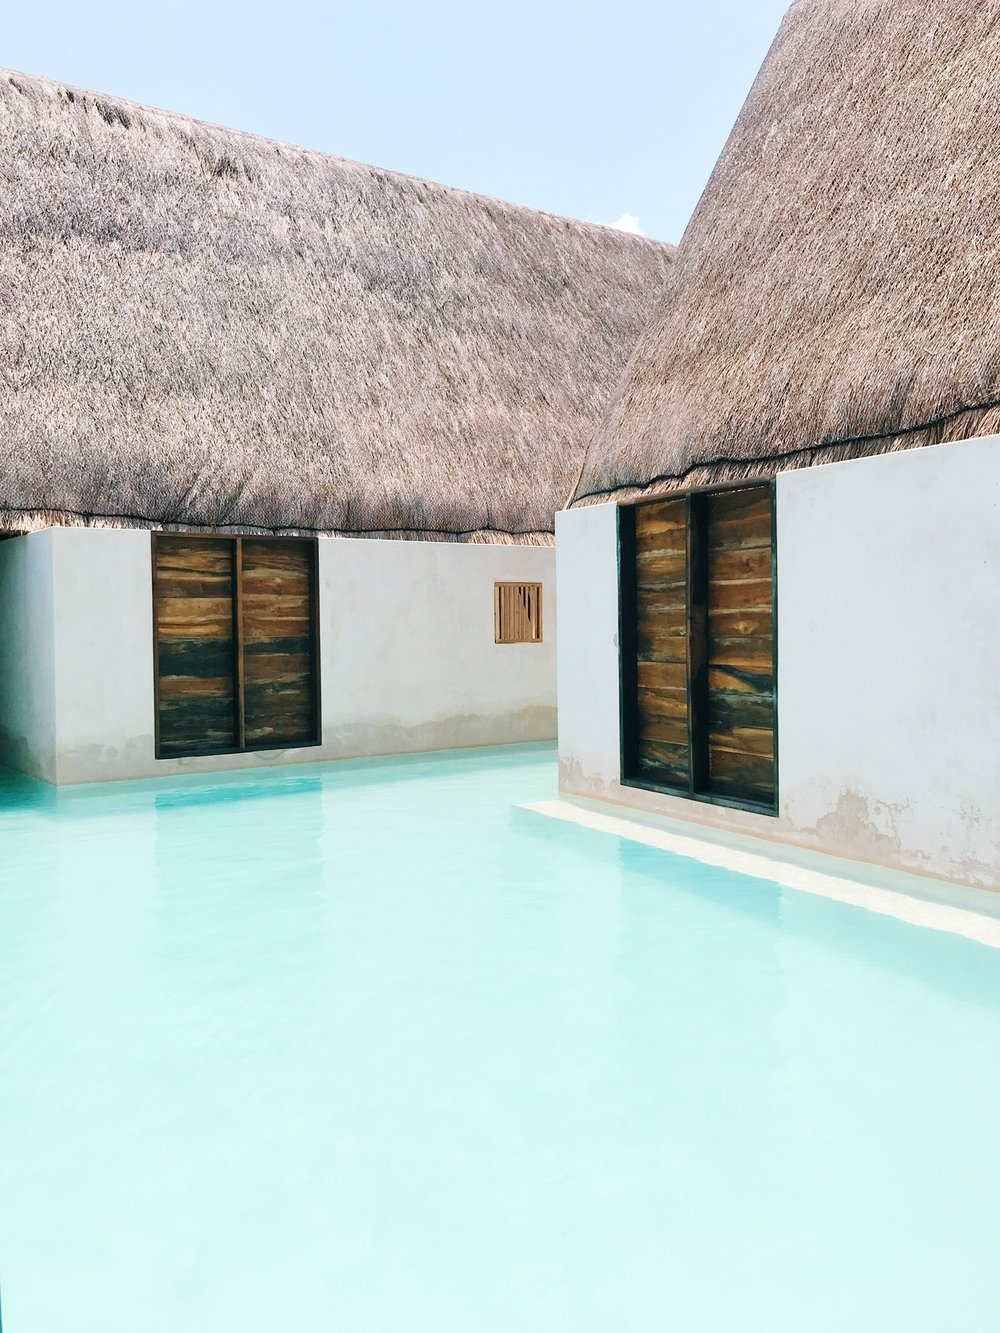 Punta Caliza, Isla Holbox - a design hotel debuts on an island off the Yucatan